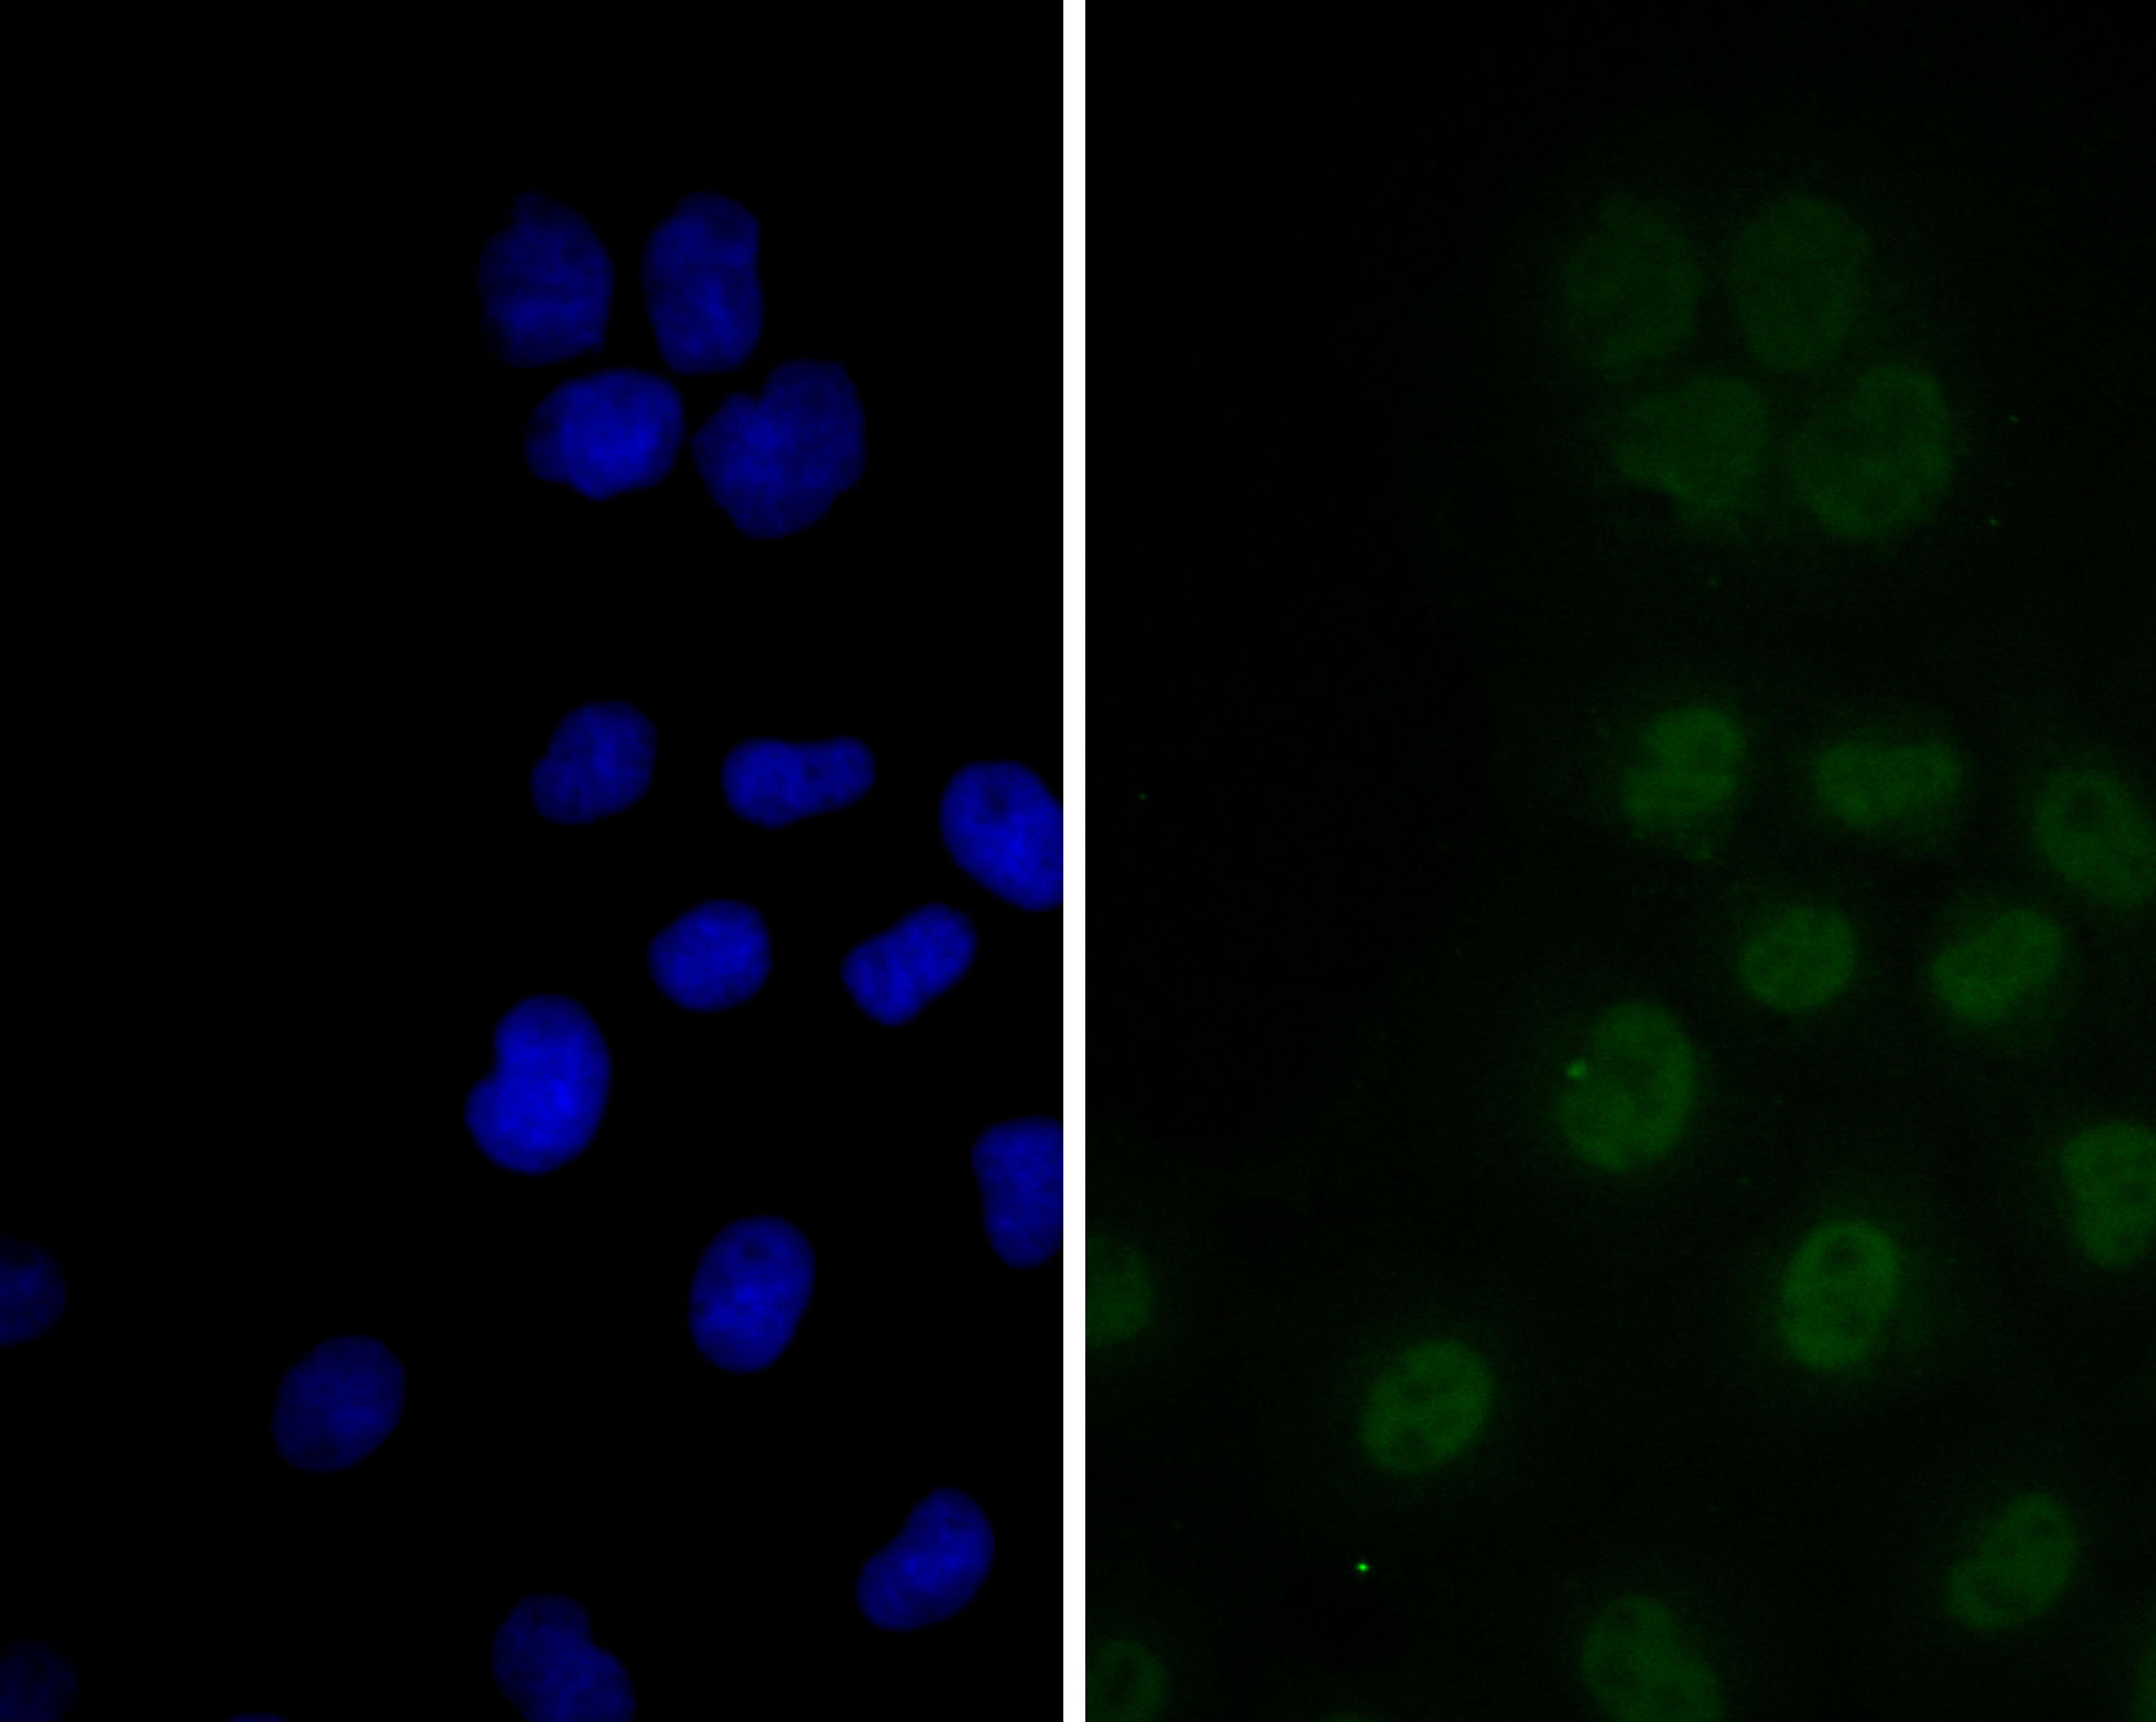 ICC staining of CDKN2A/p16INK4a in JAR cells (green). Formalin fixed cells were permeabilized with 0.1% Triton X-100 in TBS for 10 minutes at room temperature and blocked with 1% Blocker BSA for 15 minutes at room temperature. Cells were probed with the primary antibody (ER2001-30, 1/100) for 1 hour at room temperature, washed with PBS. Alexa Fluor®488 Goat anti-Rabbit IgG was used as the secondary antibody at 1/100 dilution. The nuclear counter stain is DAPI (blue).